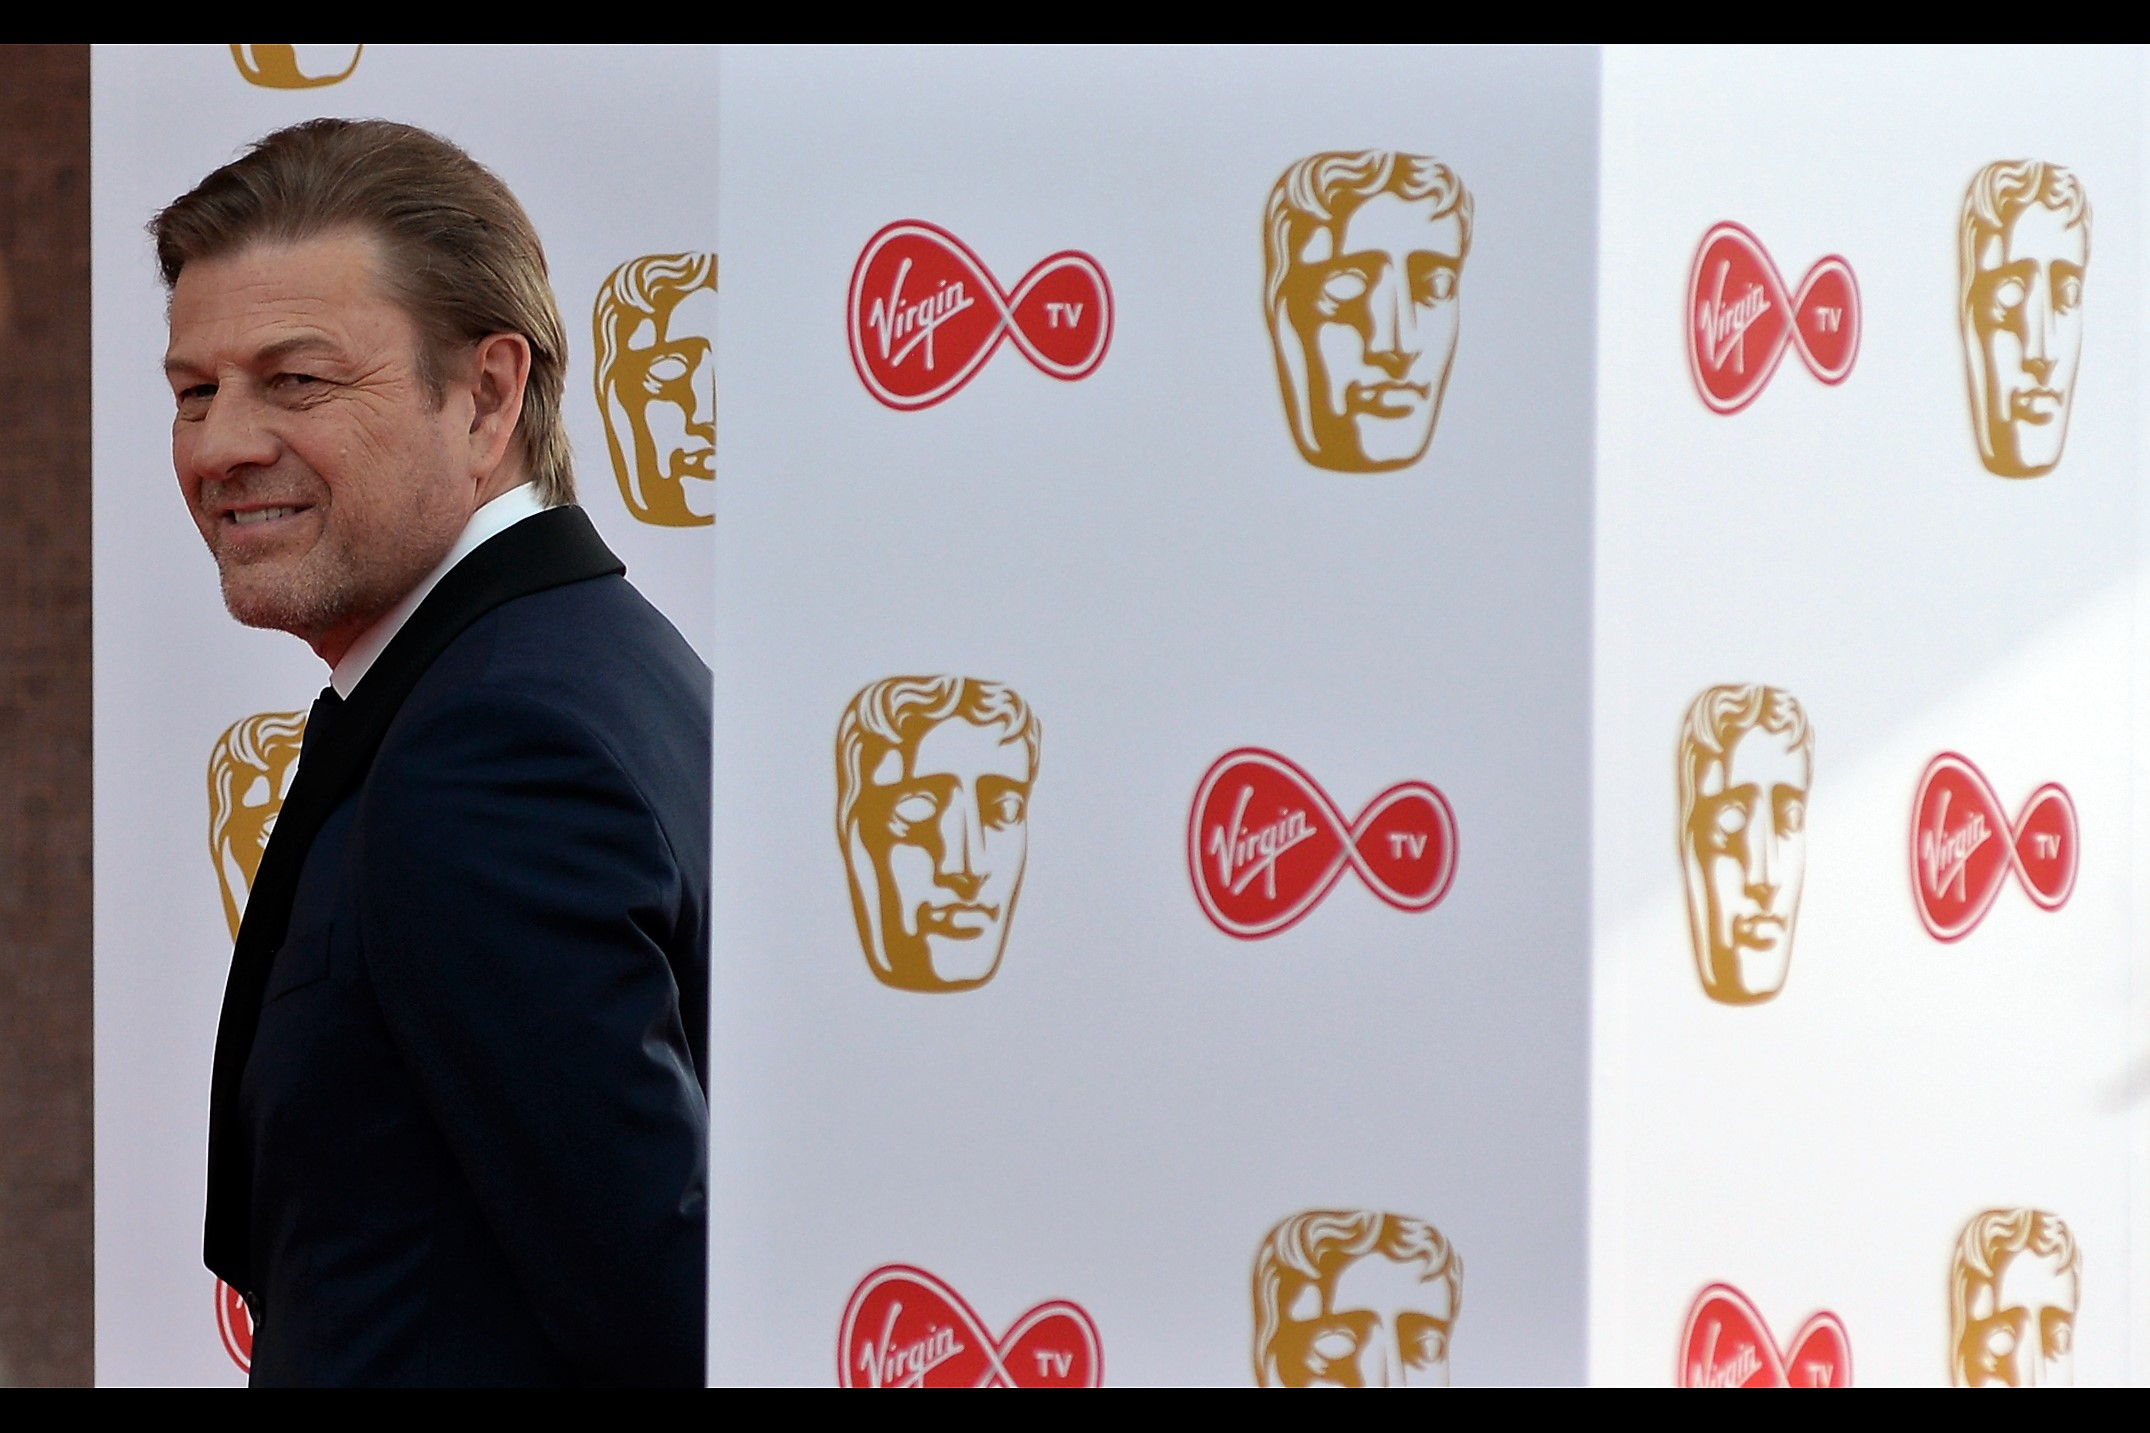 I last photographed Sean Bean at    last year's TV Baftas   . He's possibly best known for movies (like 'The Martian') but he's also been in Game of Thrones, one of the few TV Series I have watched (once episodes are on itunes)  (edited to add : he won 'Best Leading Actor' for something called 'Broken')